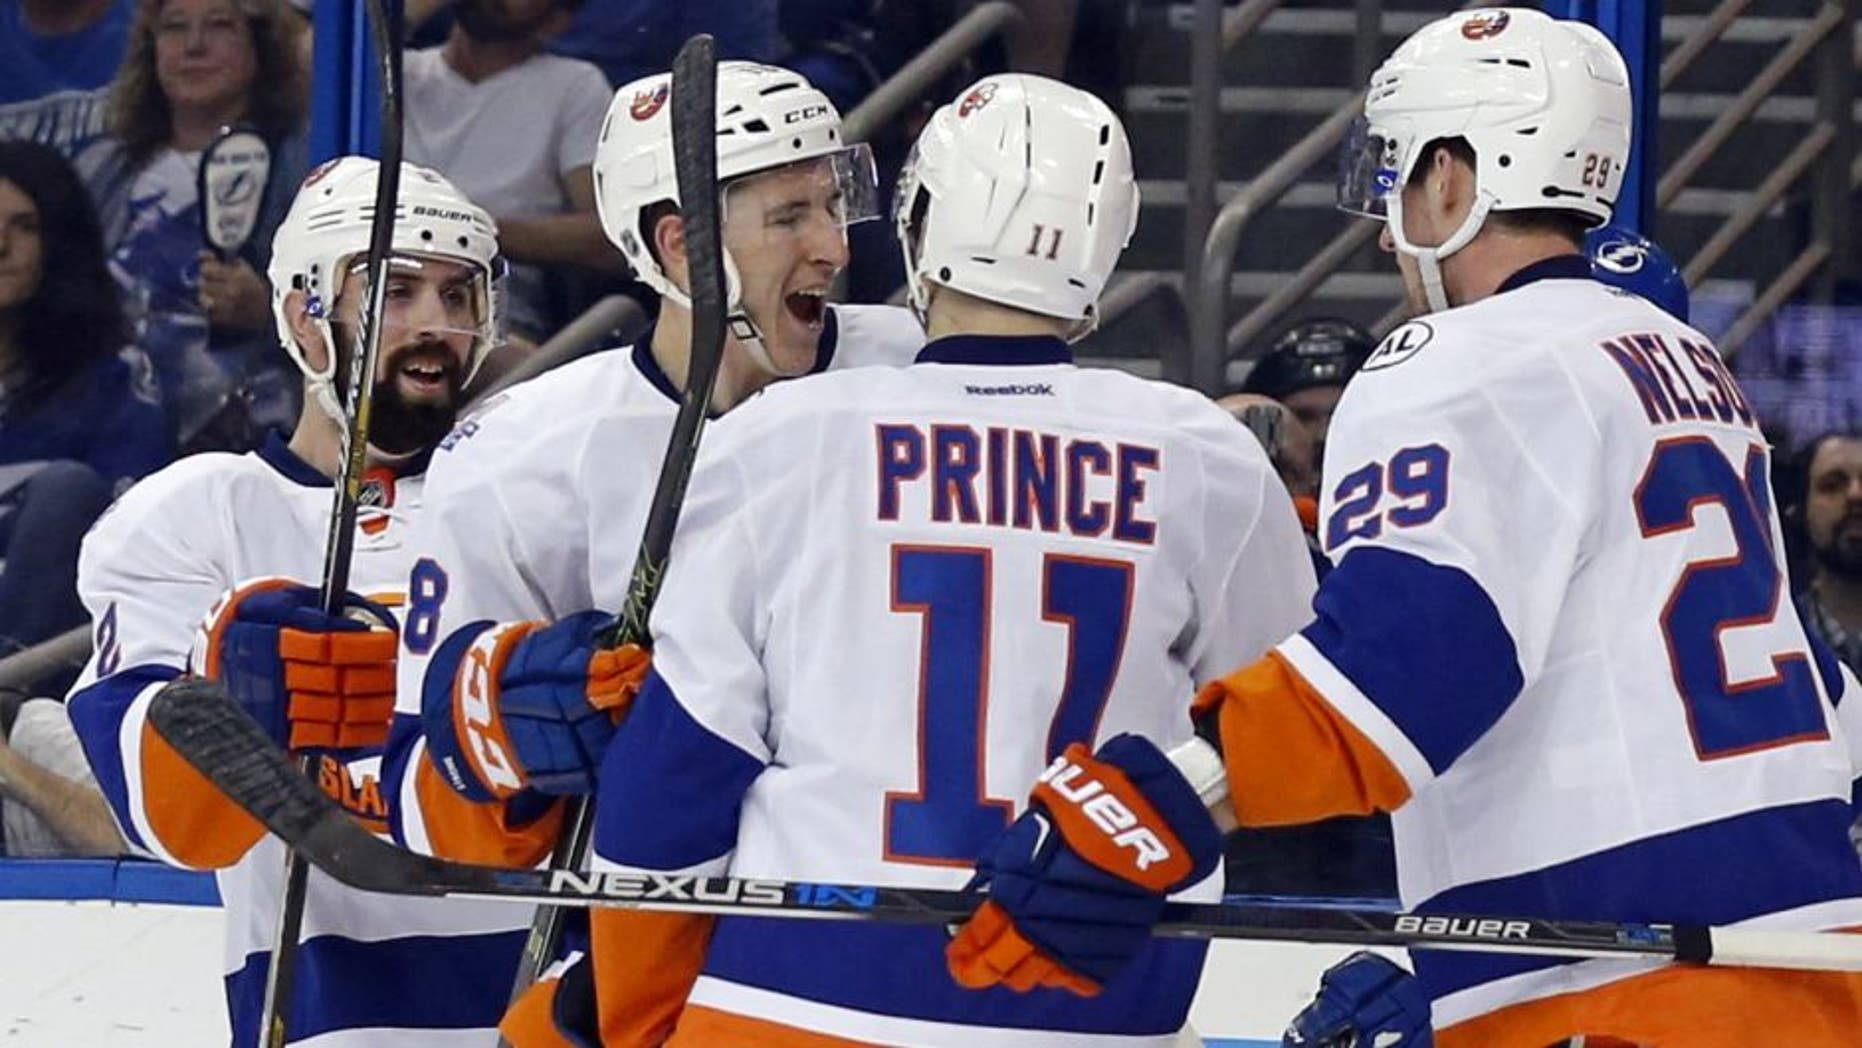 TAMPA, FL - APRIL 27: Shane Prince #11 of the New York Islanders is congratulated on his goal by teammates Nick Leddy #2, Ryan Strome #18 and Brock Nelson #29 against the Tampa Bay Lightning during the first period in Game One of the Eastern Conference Second Round during the 2016 NHL Stanley Cup Playoffs at Amalie Arena on April 27, 2016 in Tampa, Florida. (Photo by Mike Carlson/Getty Images)